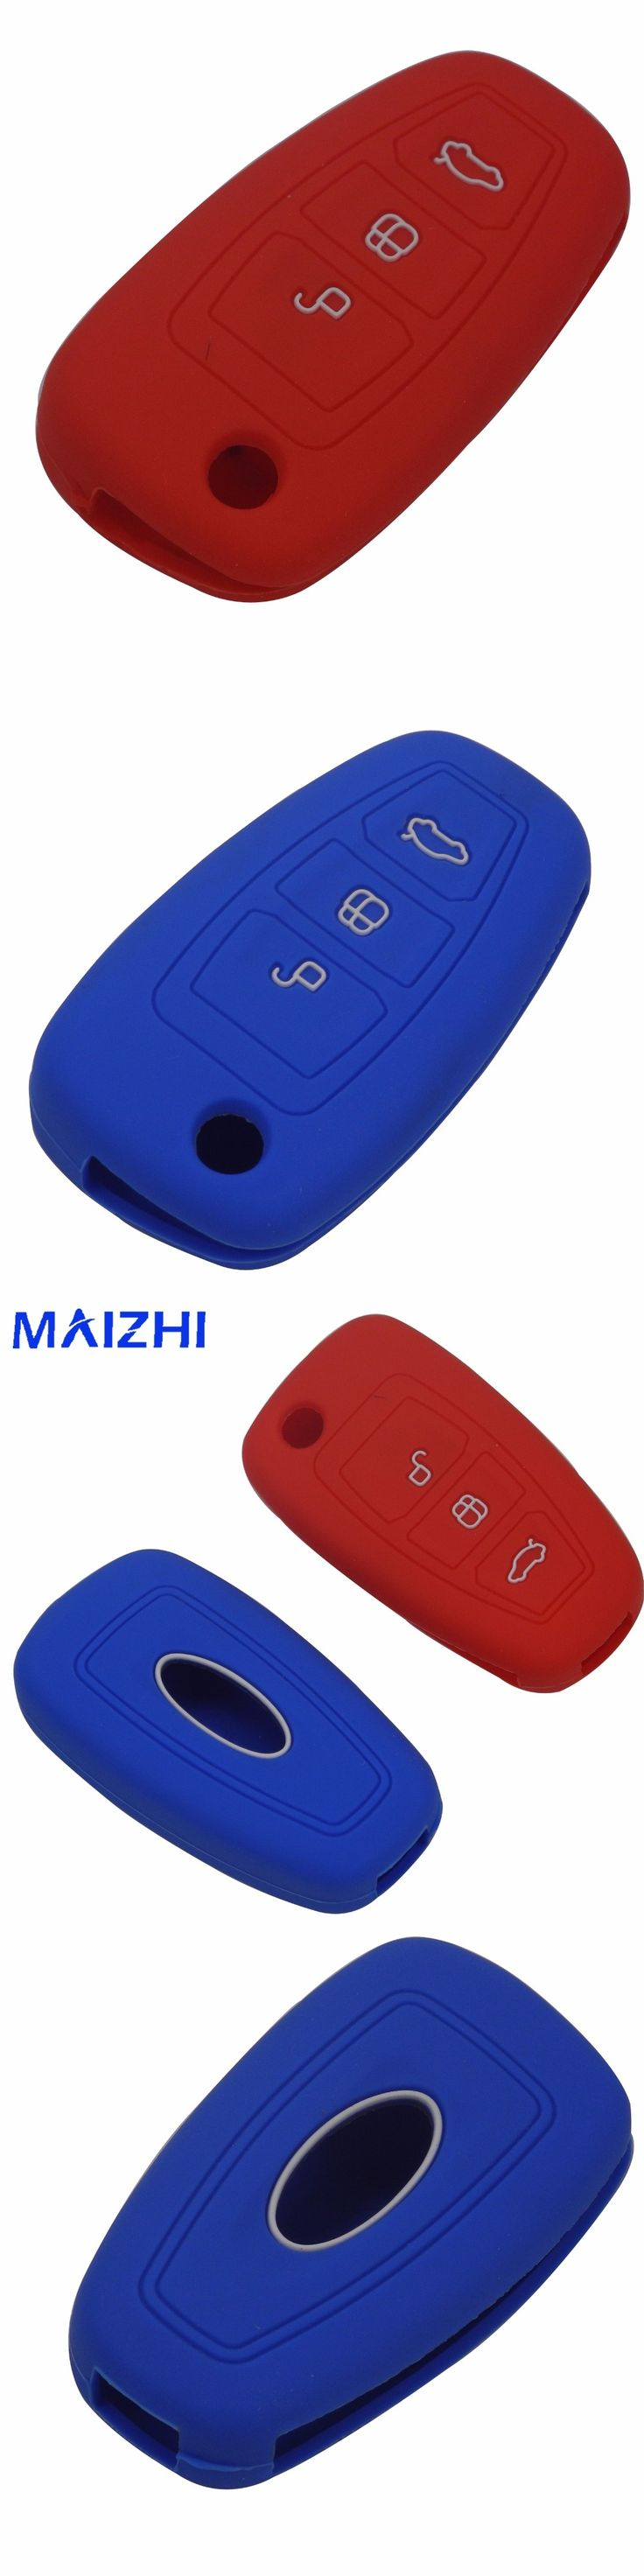 maizhi 3 Buttons Silicone Car Key Cover Case For Ford Mondeo Focus 3 MK3 Kuga Fiesta Escape Ecosport Car-styling